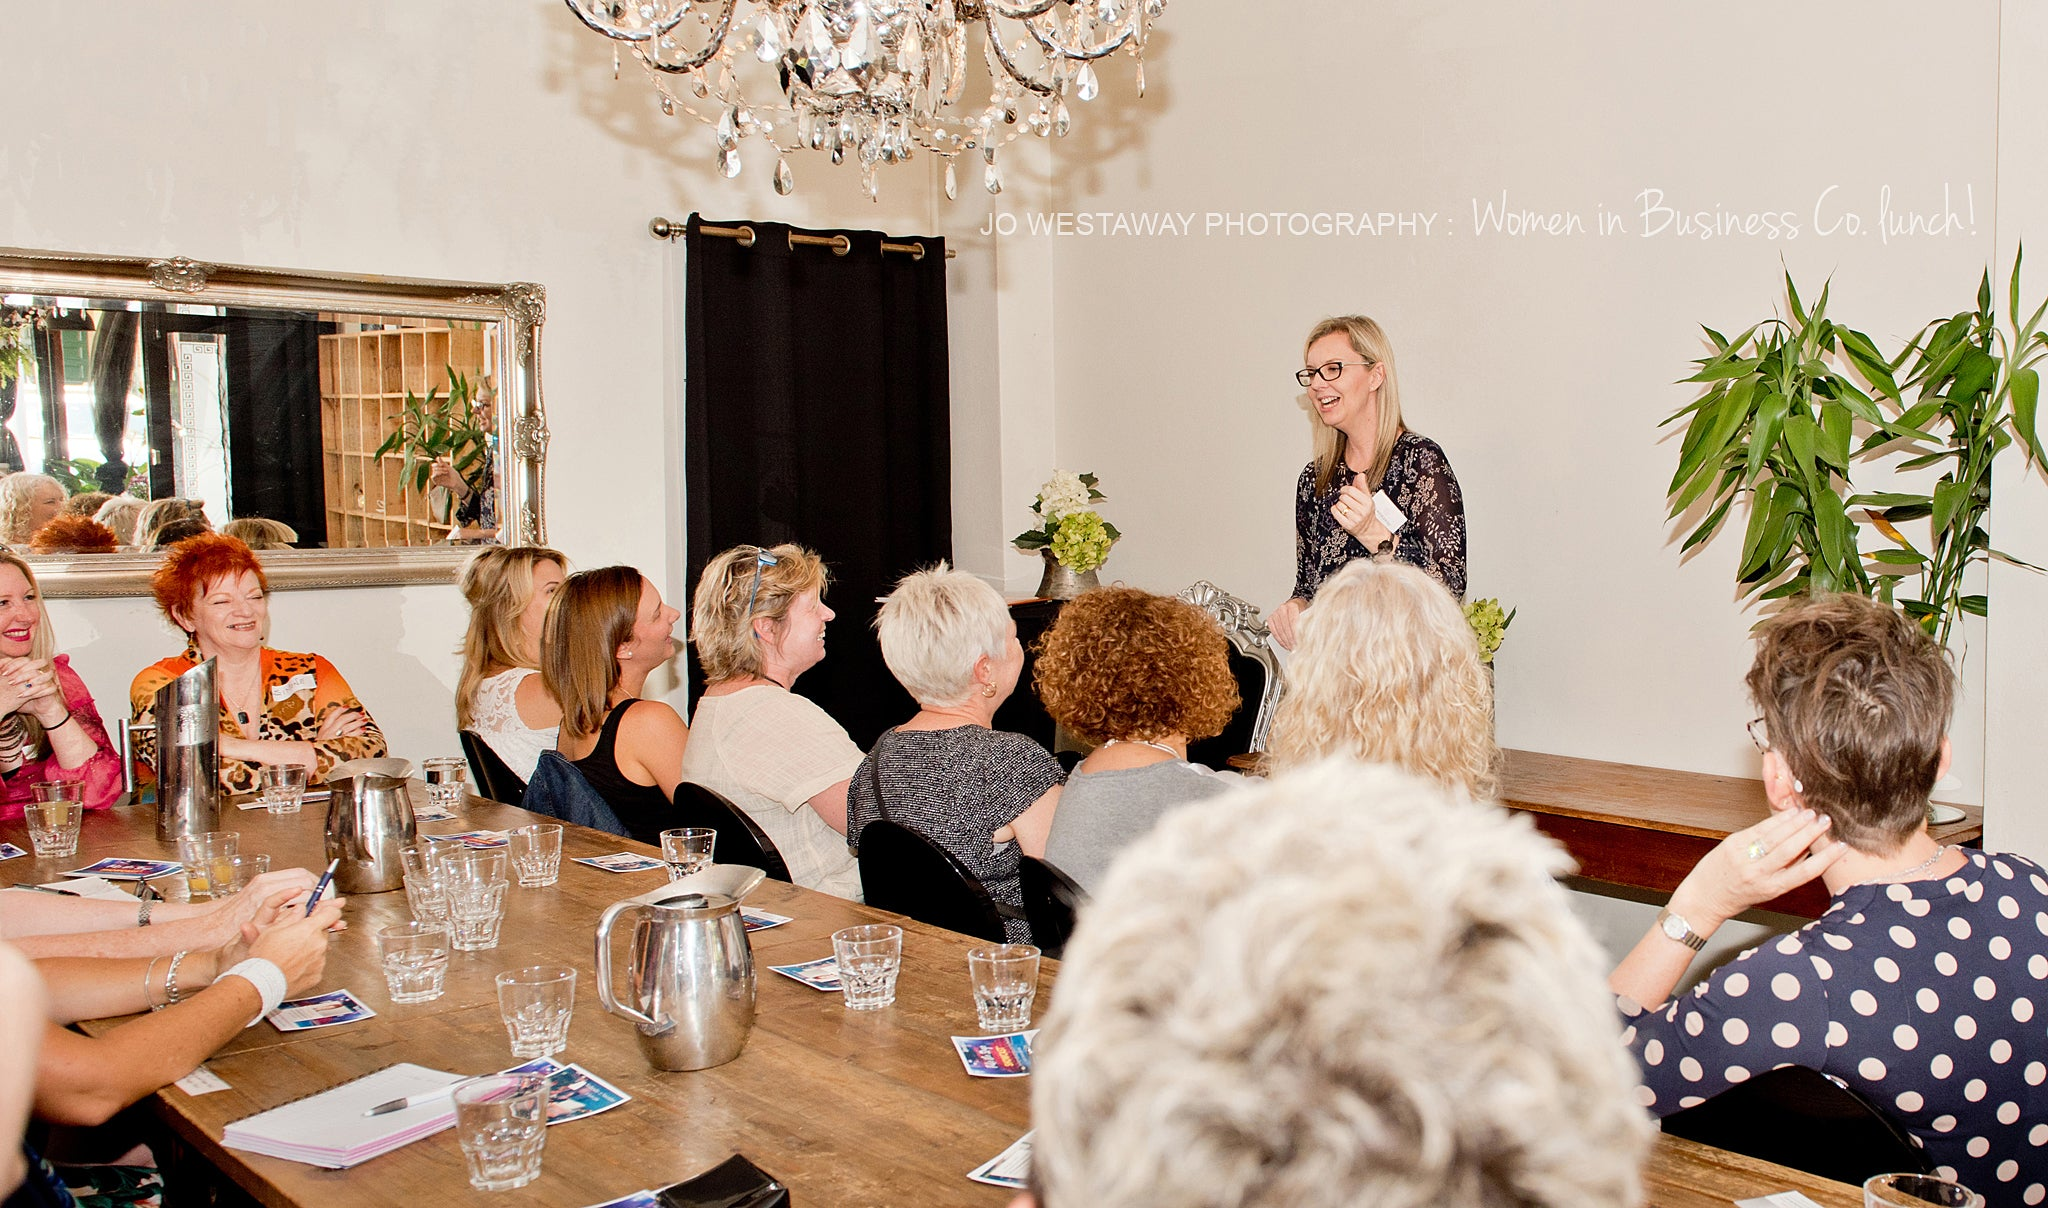 Personal brand photographer Jo Westaway hosts Brisbane business networking event